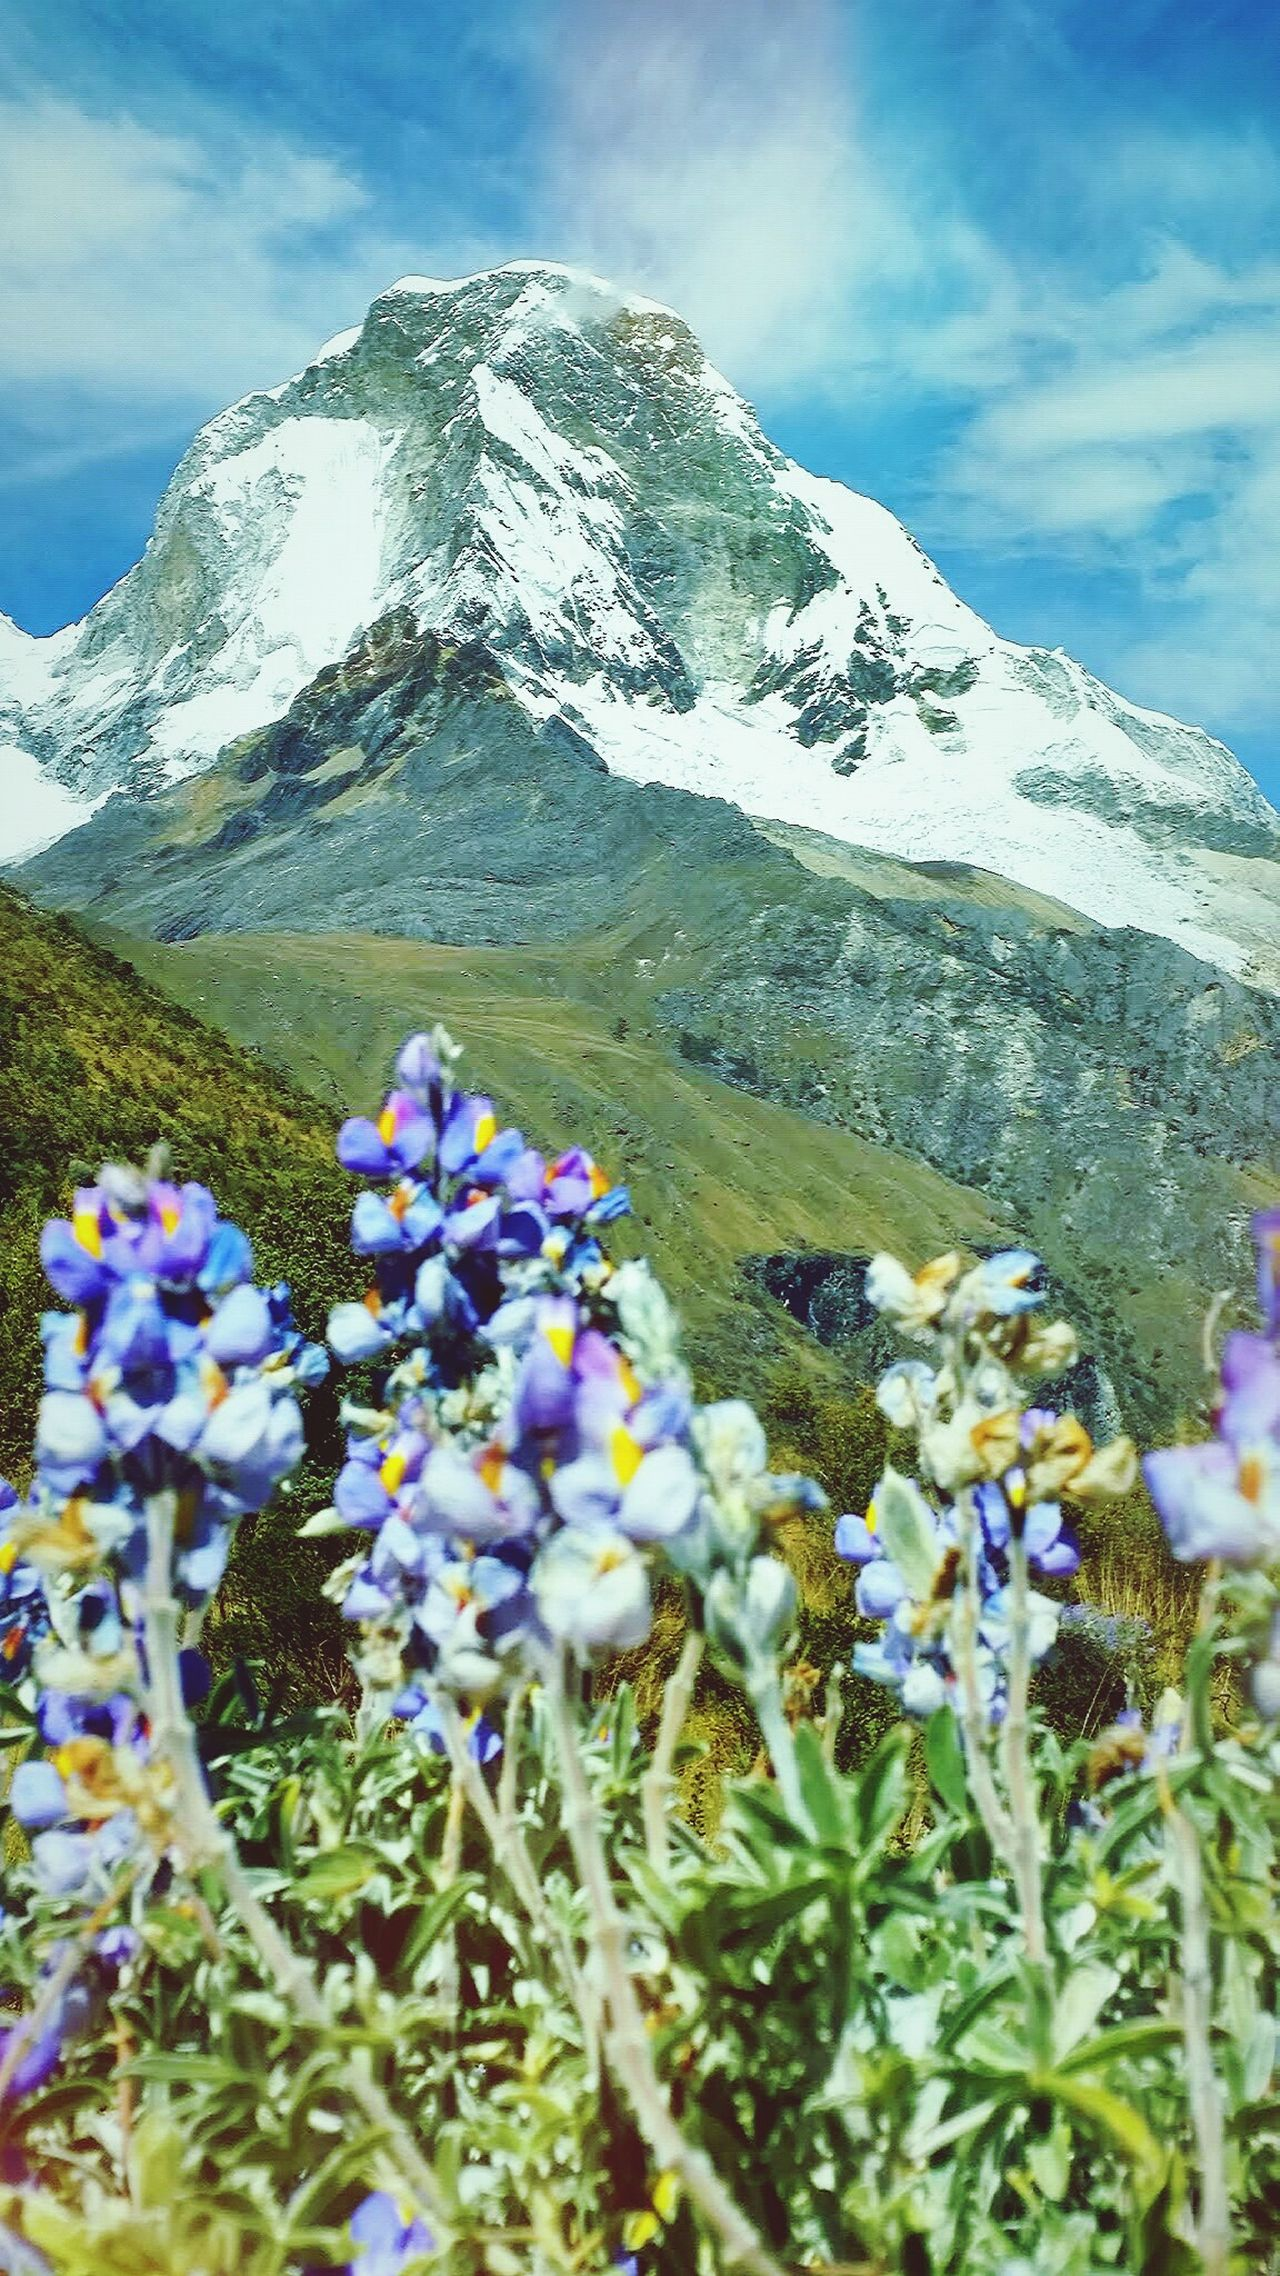 Huascarán Lavander Flowers Mountain View Snow Mountain Trekking Nature Love Freshness Magical Places Mountain And Snow View Beauty View Beauty In Nature TrekkingDay Landscape Photography Andesmountains Walk With Me Friends Trekking Trekking In Perú Lavander Colour Freshair Huaraz, Peru